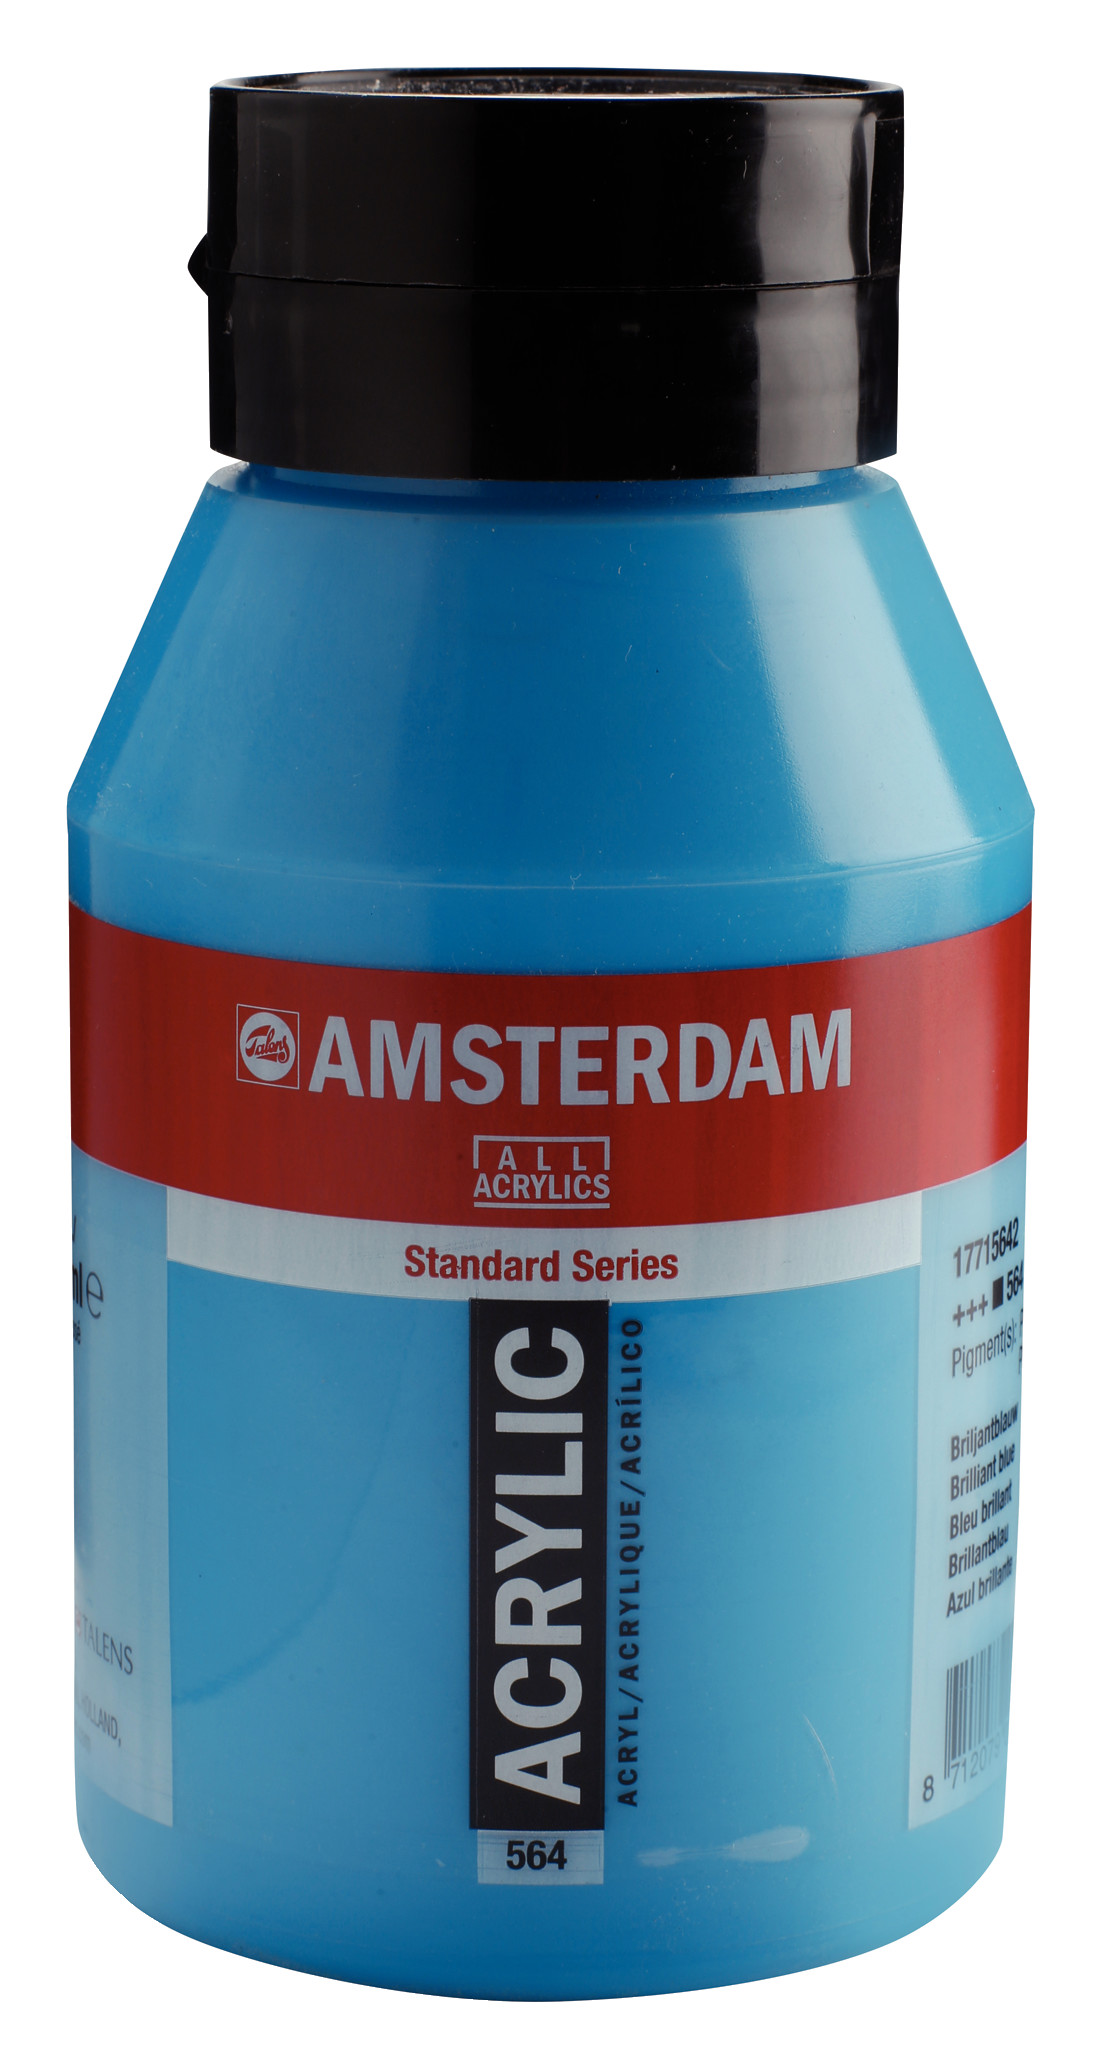 Amsterdam Standard Series Acrylic Jar 1000 ml Brilliant blue 564